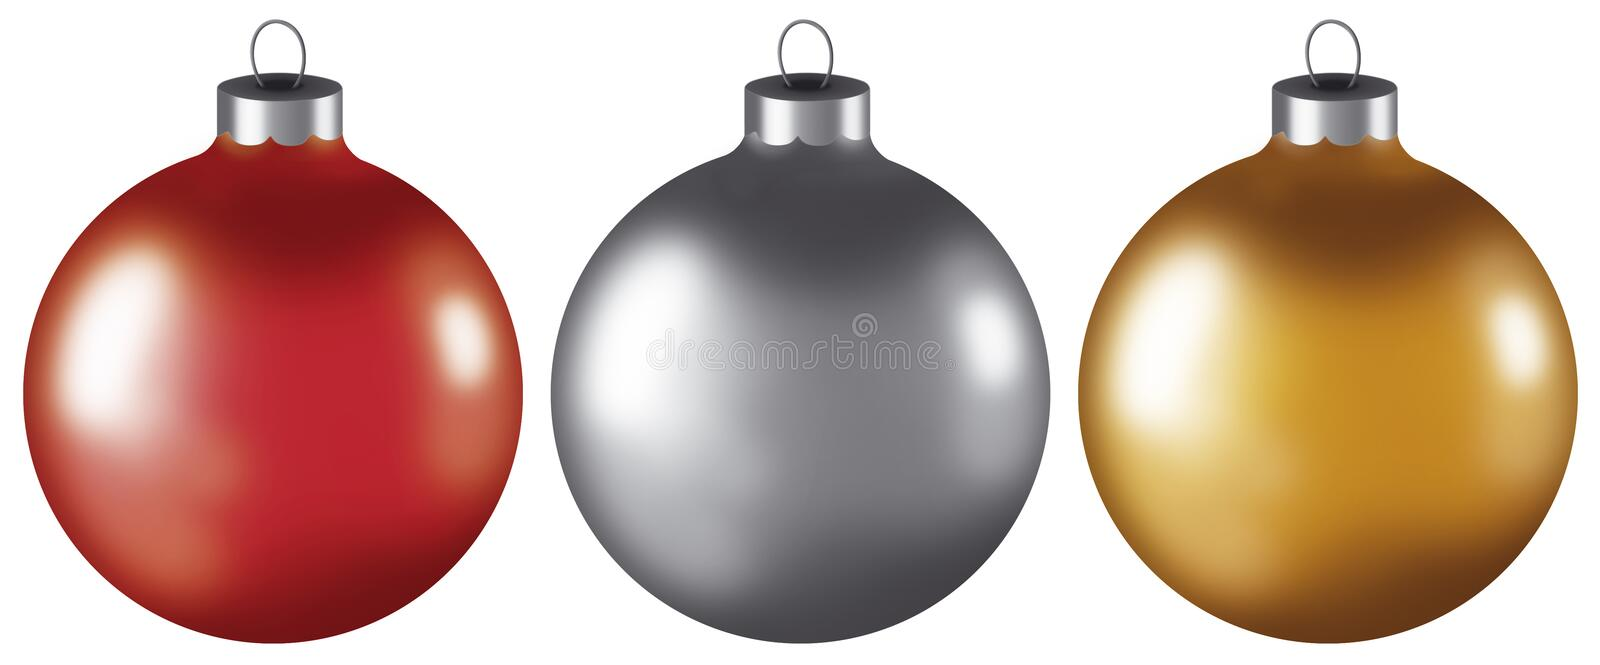 Christmas Ball Ornaments royalty free stock photography